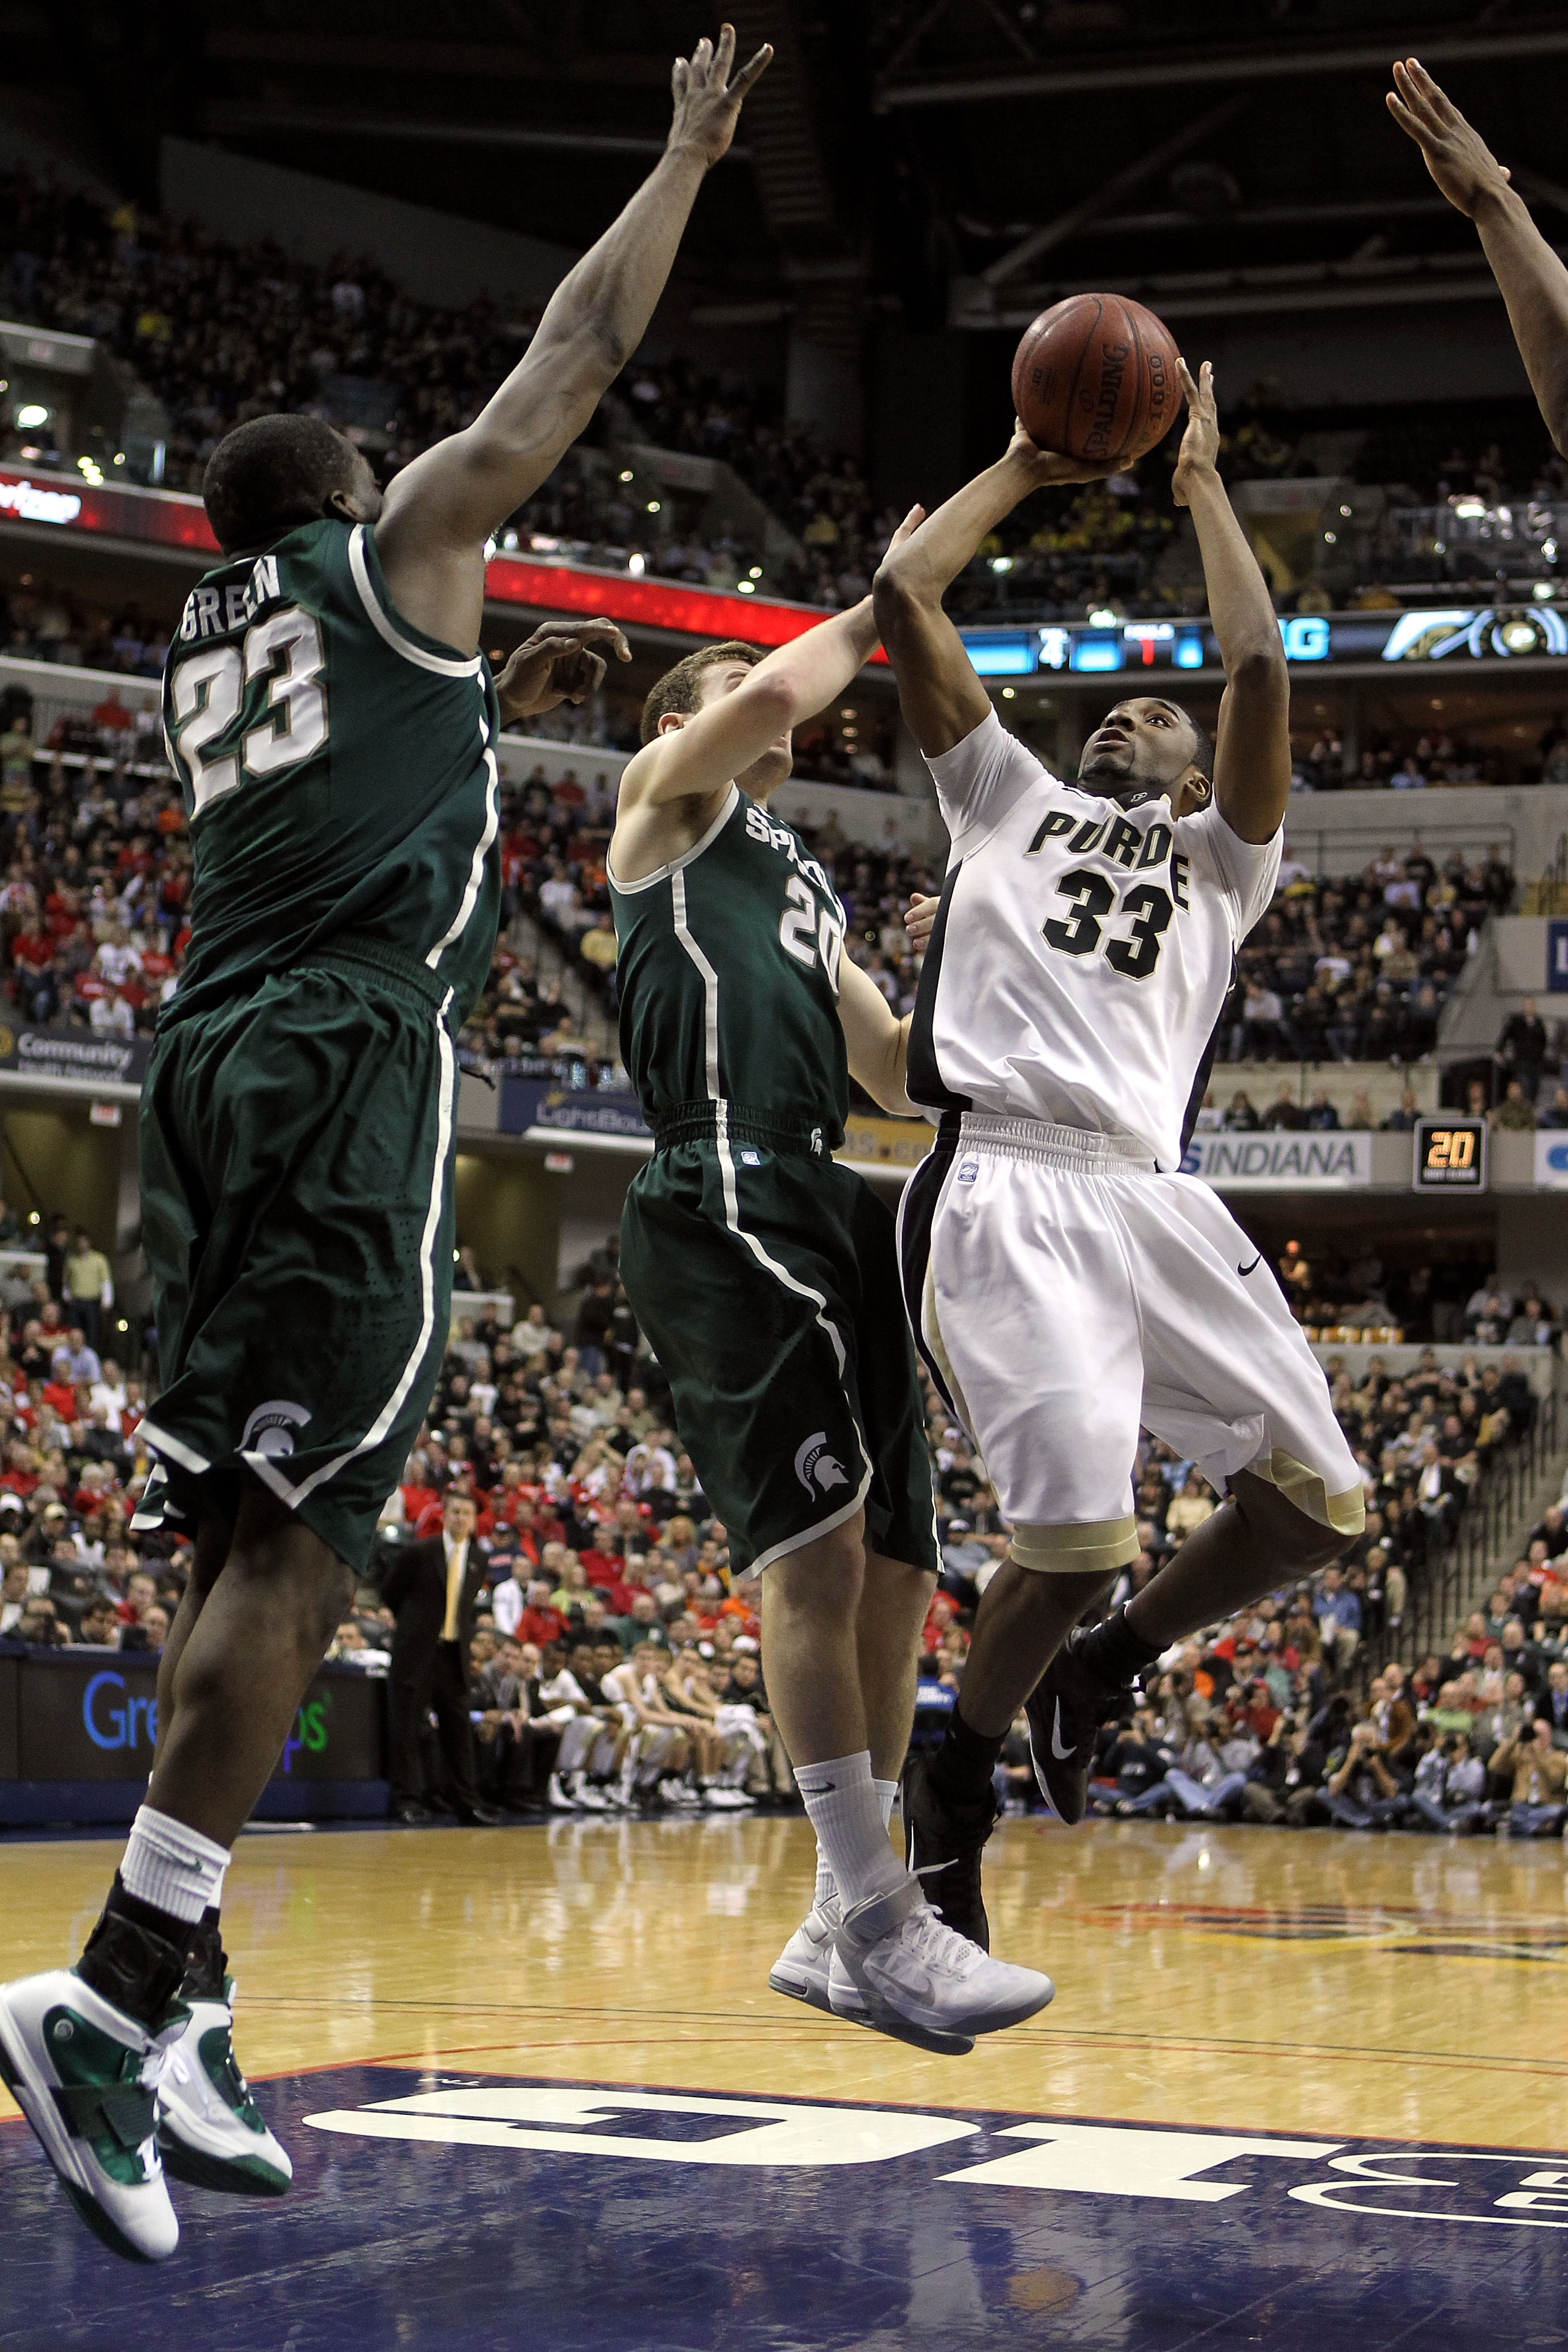 INDIANAPOLIS, IN - MARCH 11:  E'Twaun Moore #33 of the Purdue Boilermakers attempts a shot in the first half against Mike Kebler #20 and Draymond Green #23 of the Michigan State Spartans during the quarterfinals of the 2011 Big Ten Men's Basketball Tourna